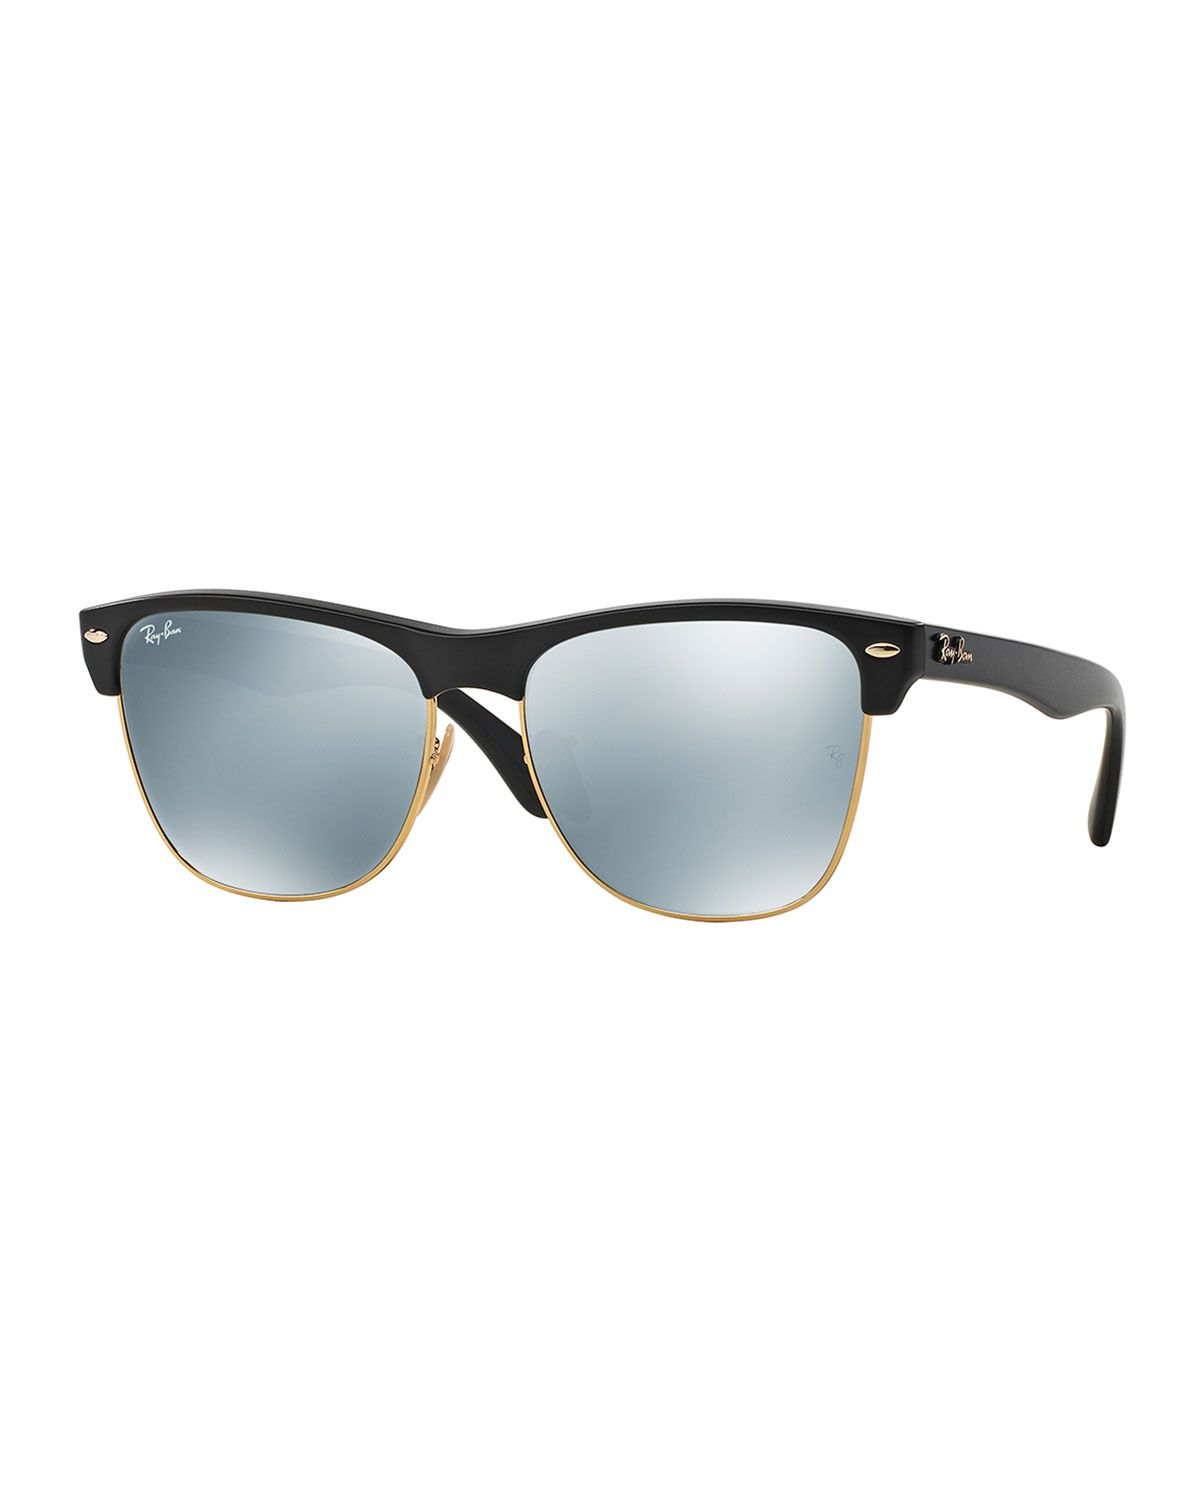 353a31bb17c689 Clubmaster Sunglasses with Mirror Lens